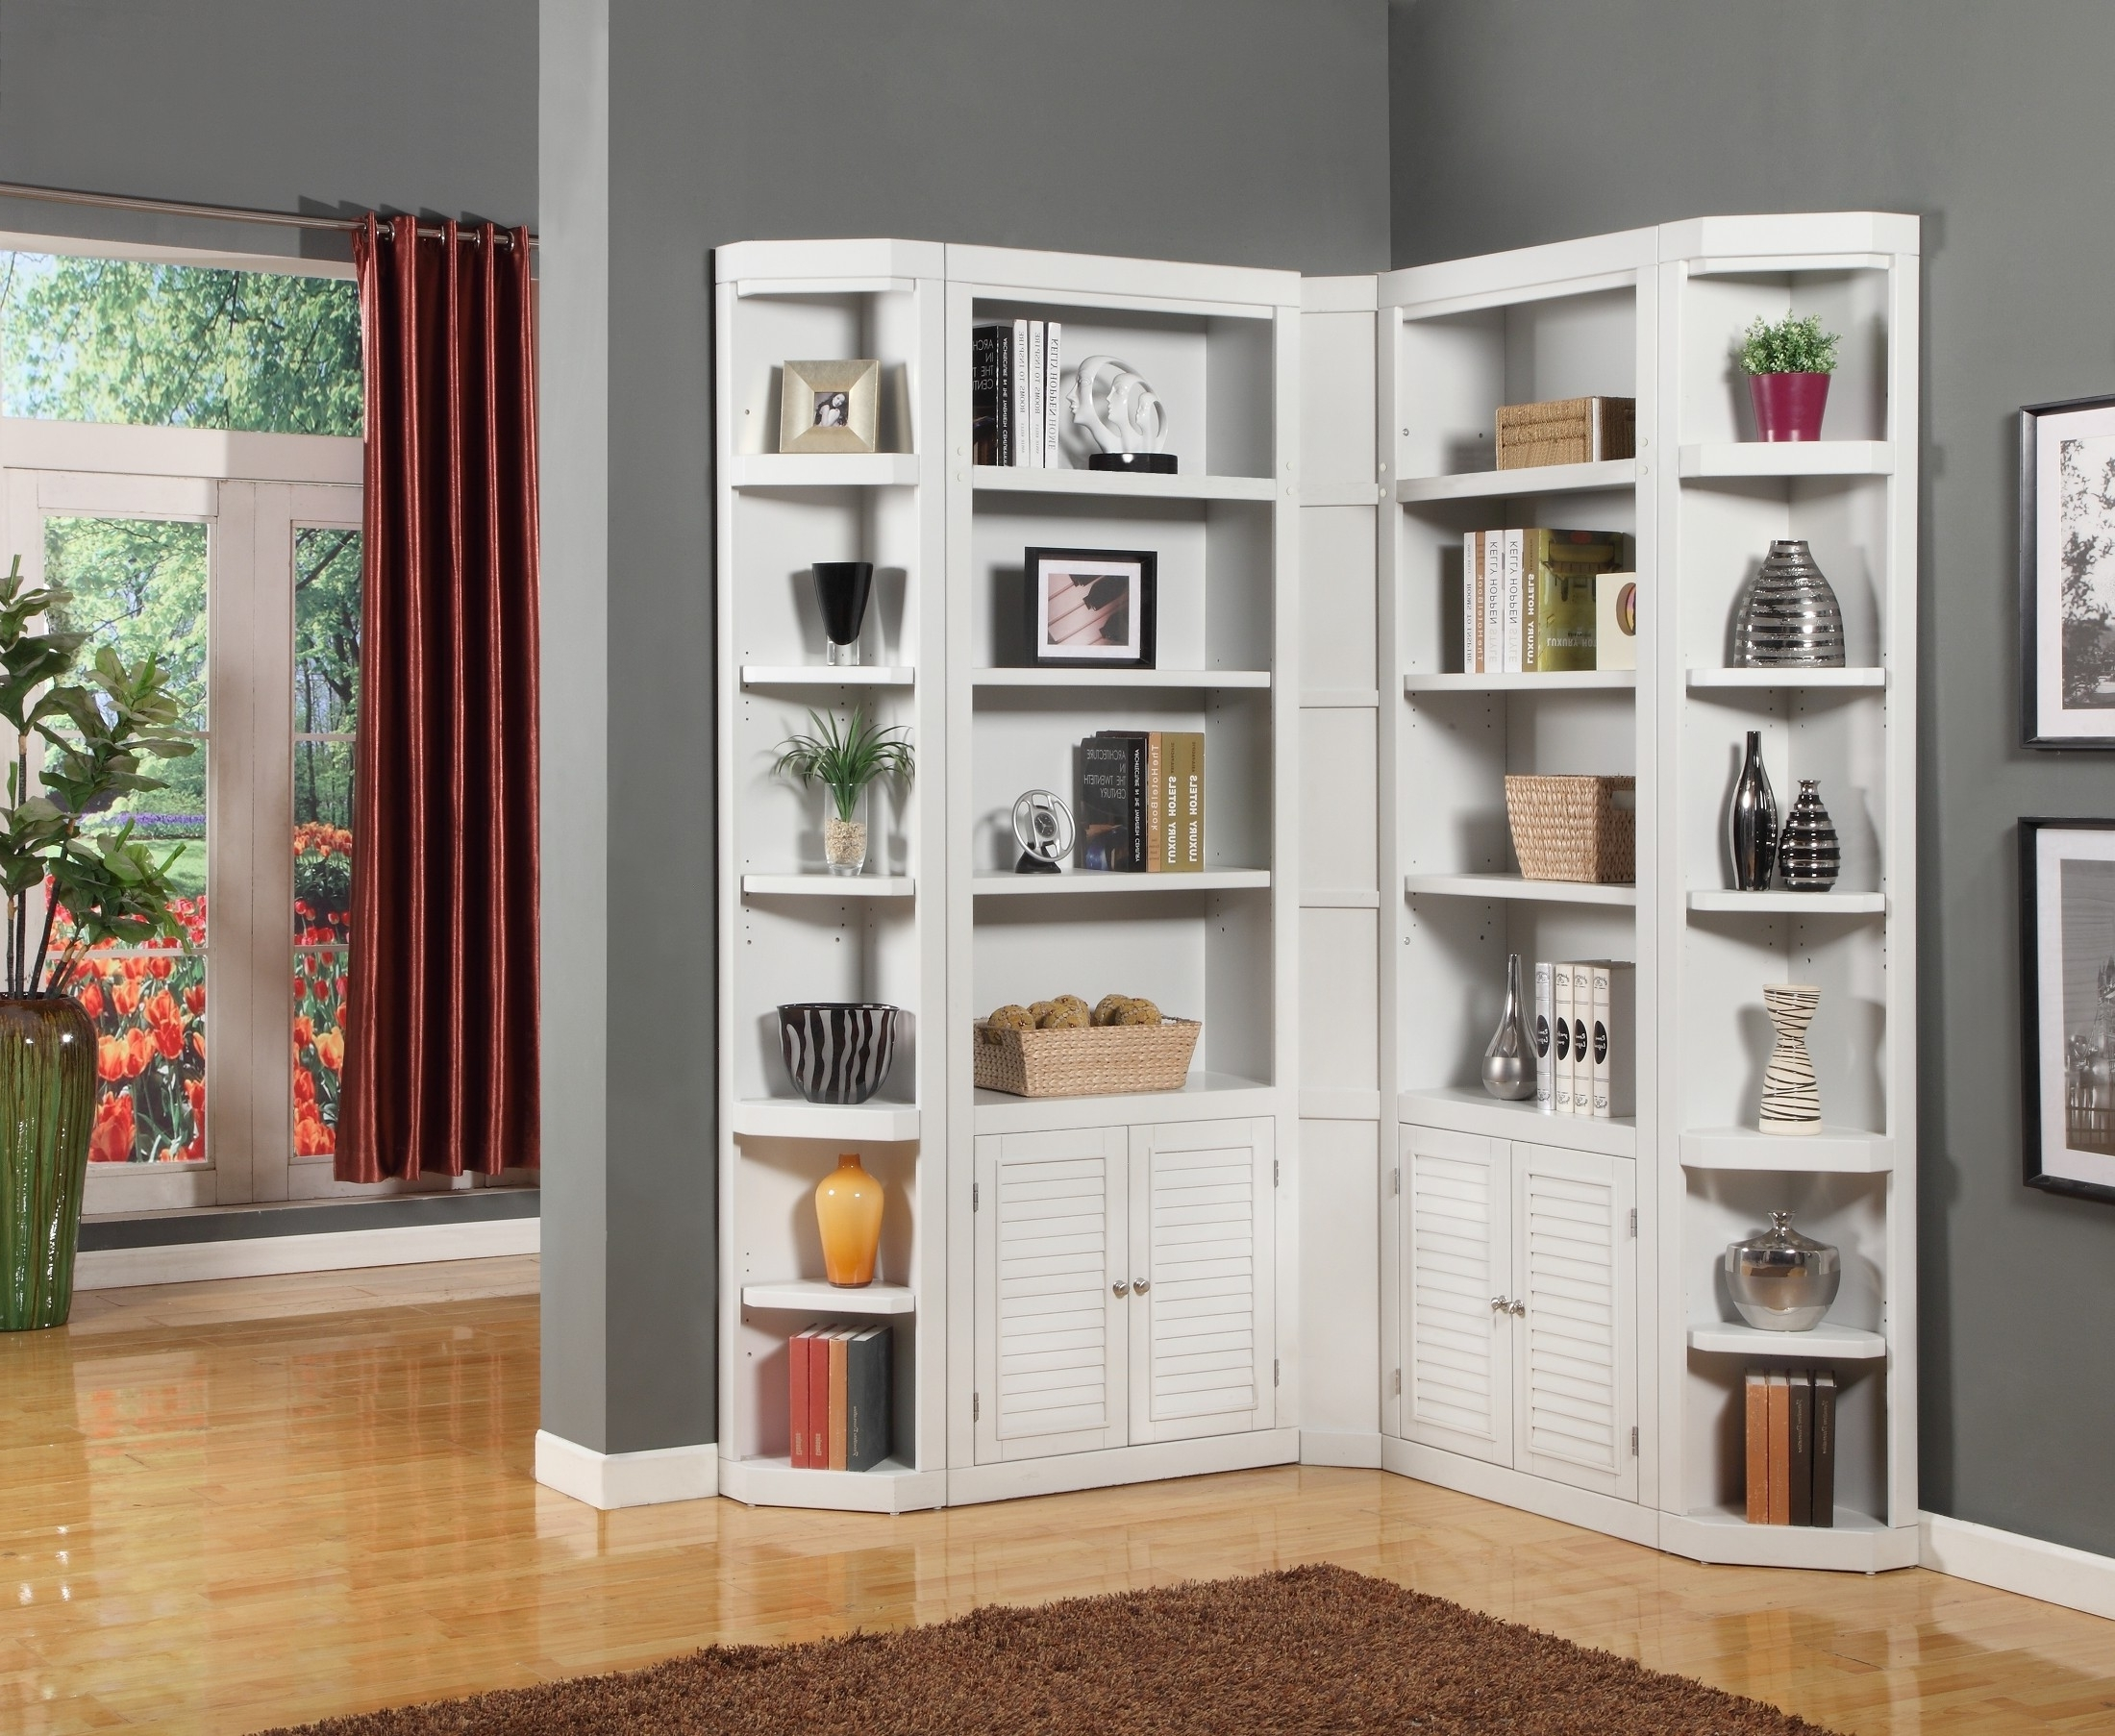 L Shaped Bookcases With Most Popular L Shaped Bookshelves Build Your Own Corner 19 Bookshelf Marvellous (View 5 of 15)